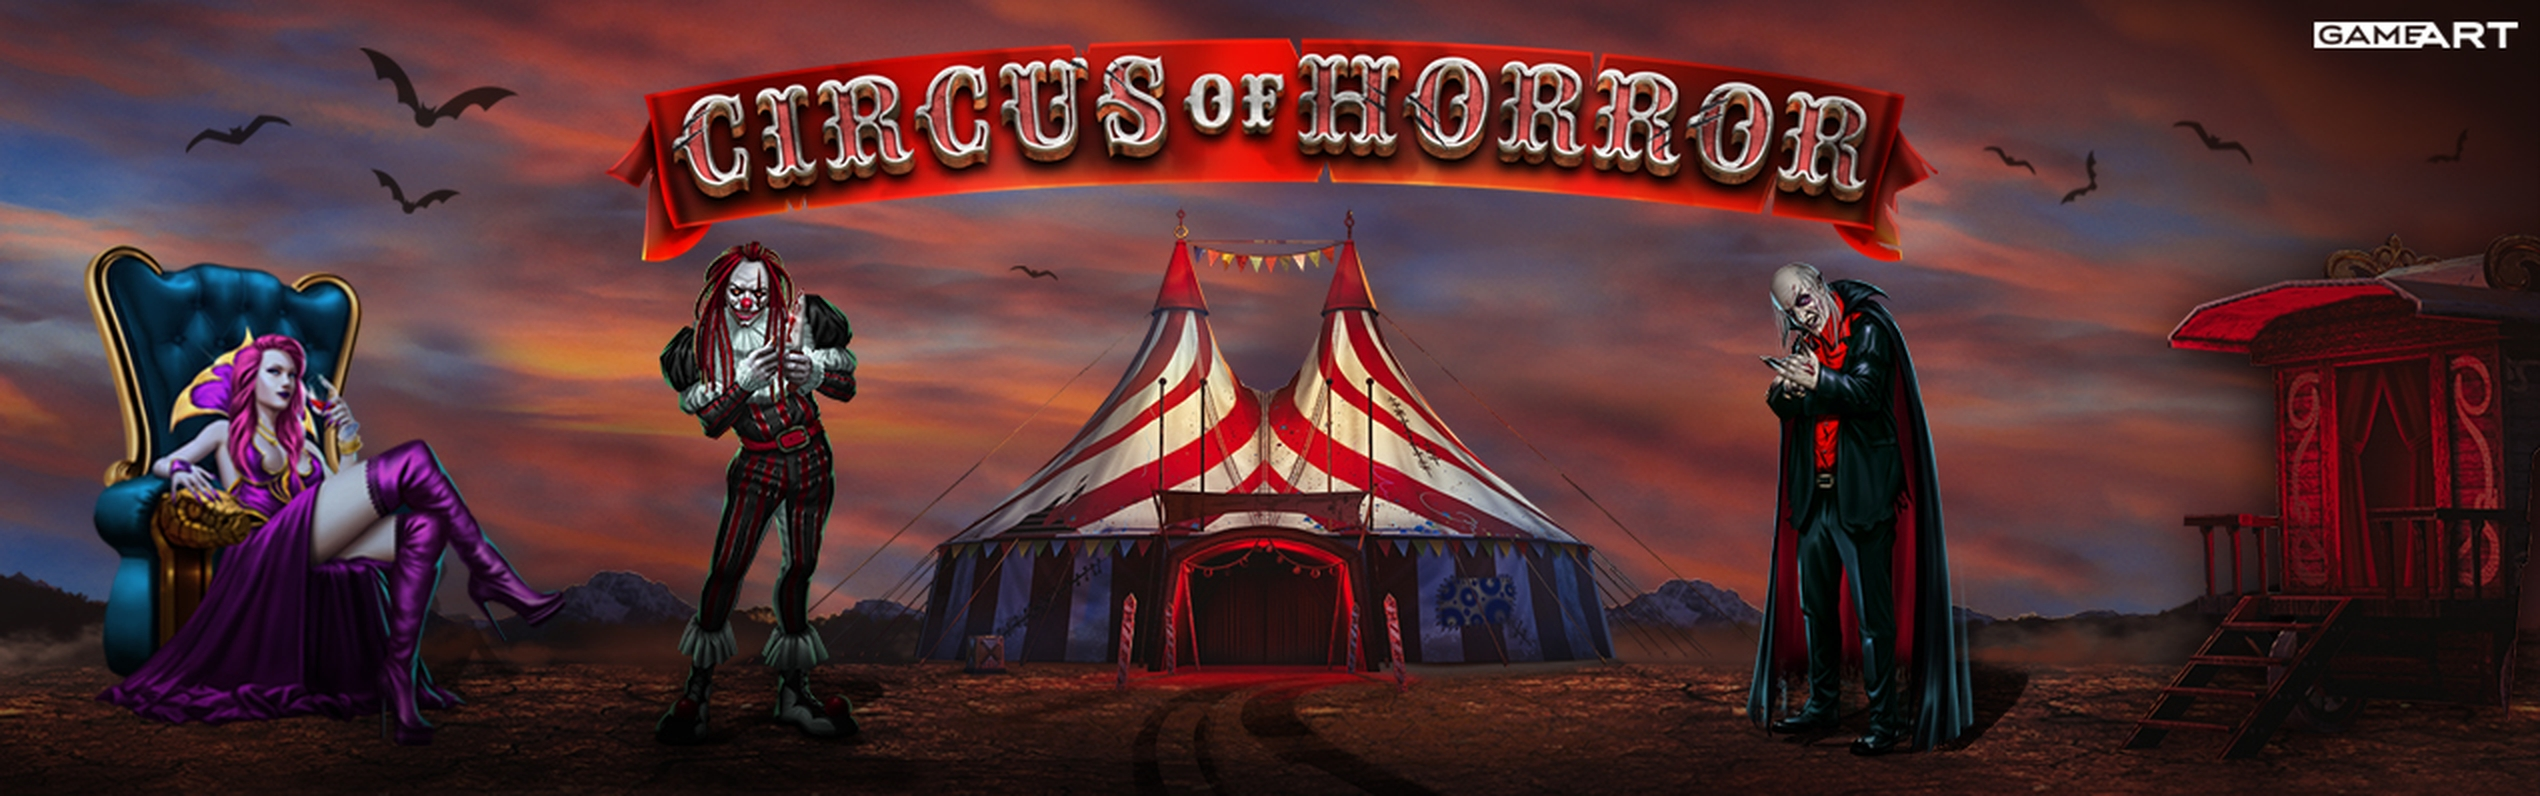 The Circus of Horror Online Slot Demo Game by GameArt